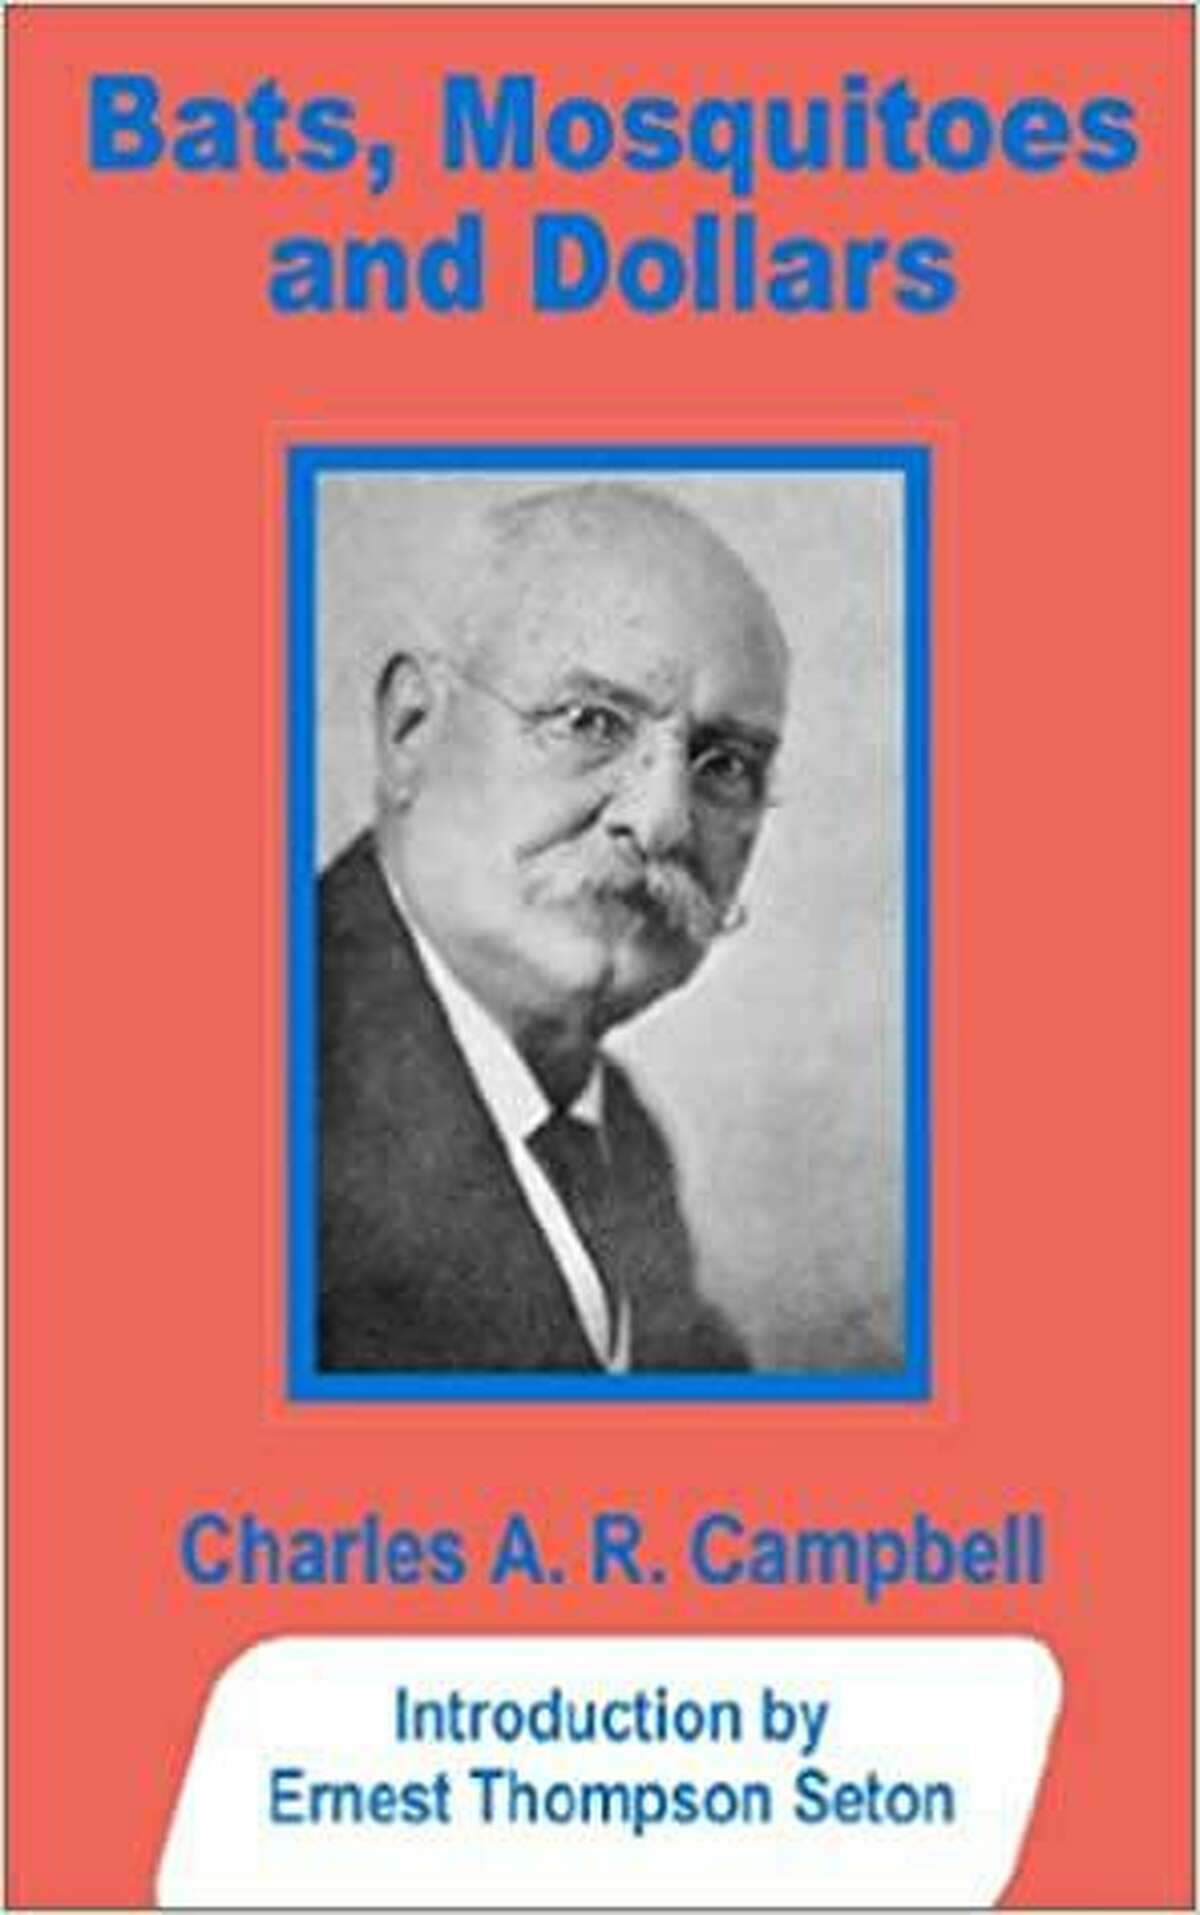 """Cover image of Dr. Charles Campbell's book """"Bats, Mosquitoes and Dollars"""""""